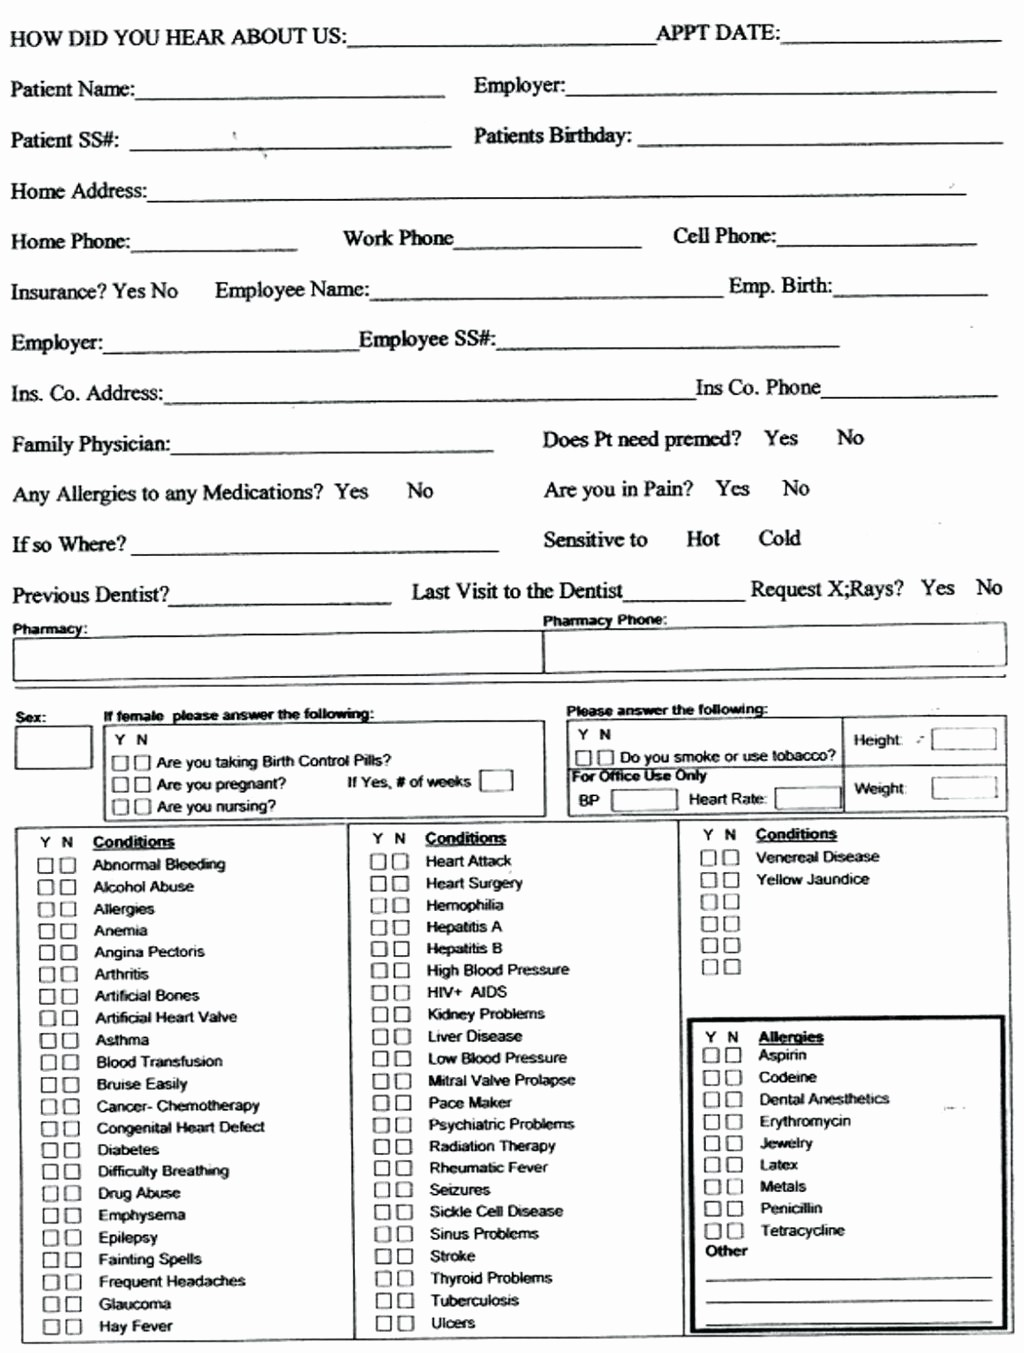 New Patient Medical History forms Elegant Employee Update form Design Templates